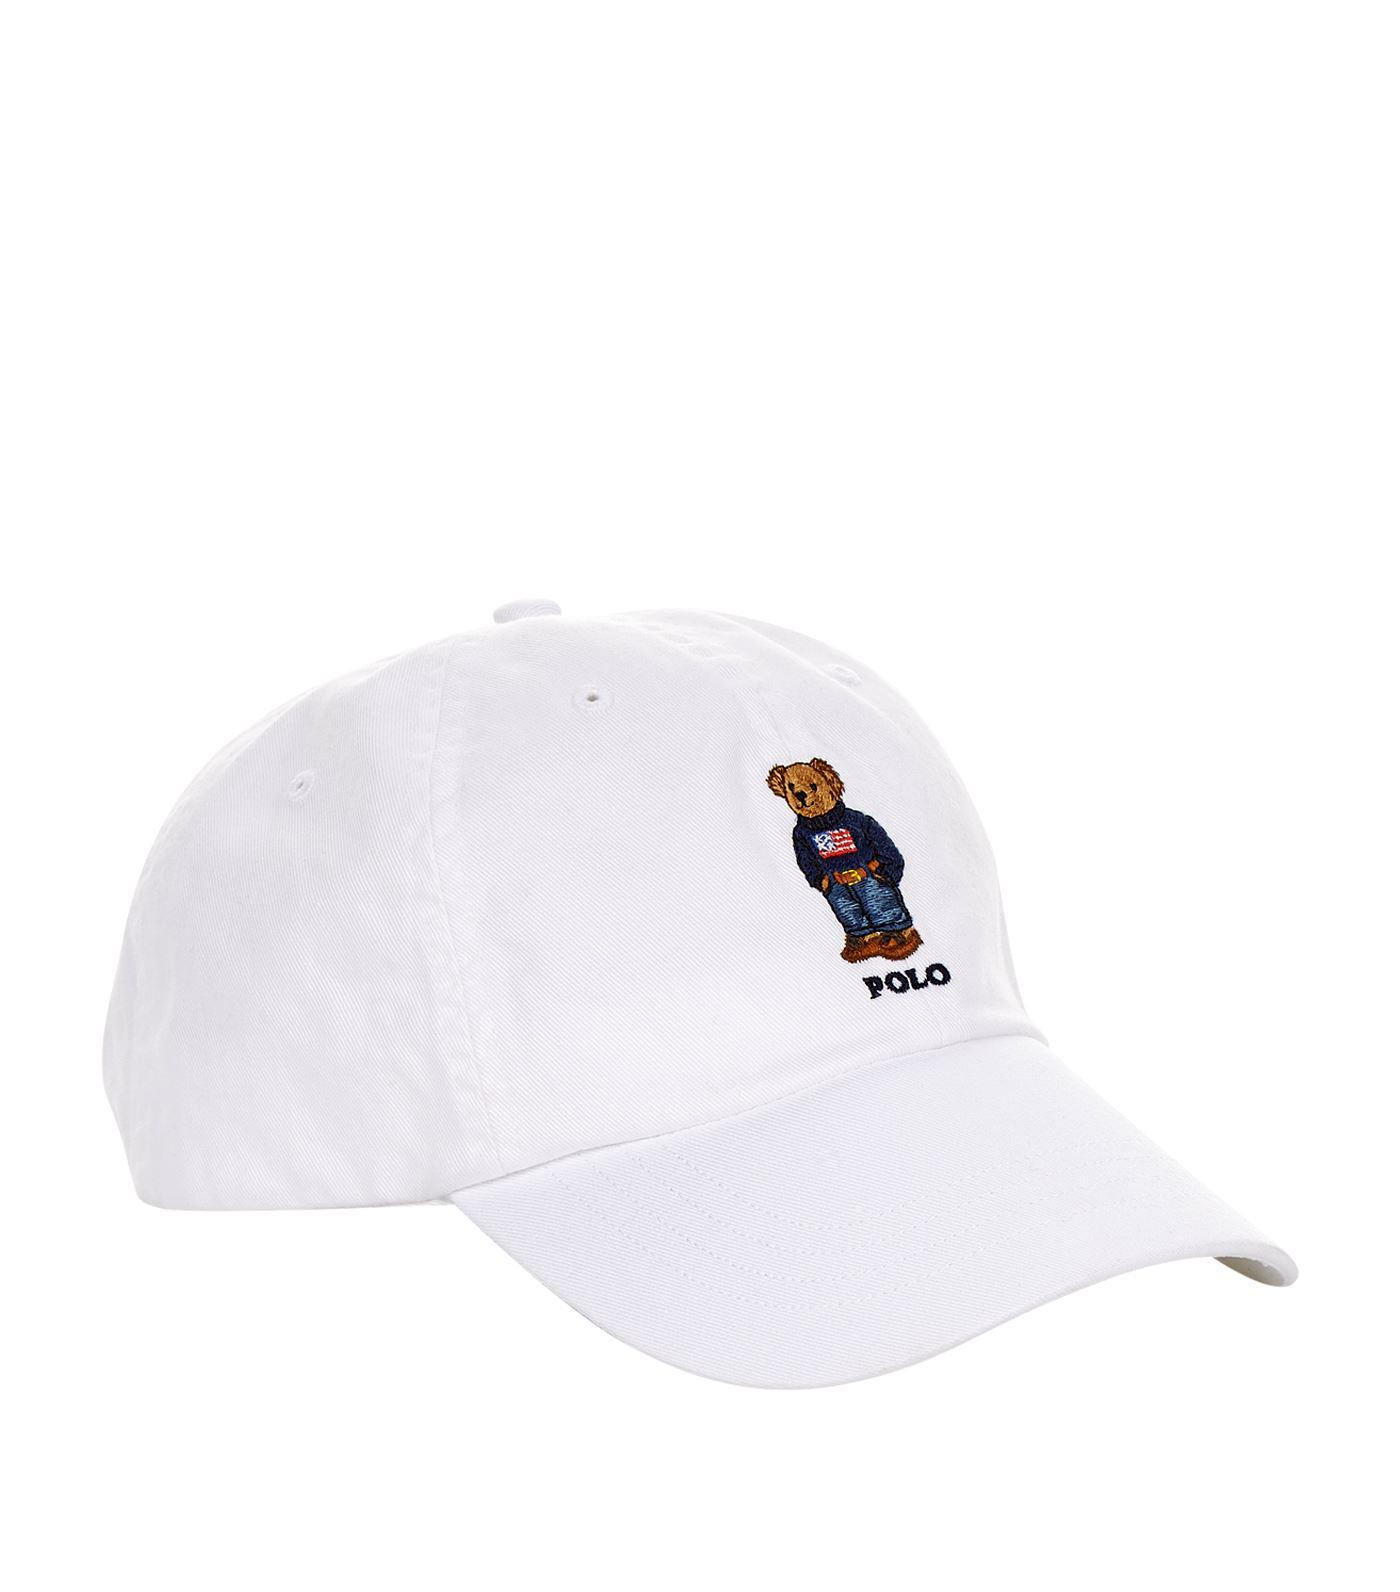 14bfe07be Polo Ralph Lauren Embroidered Bear Cap in White for Men - Lyst